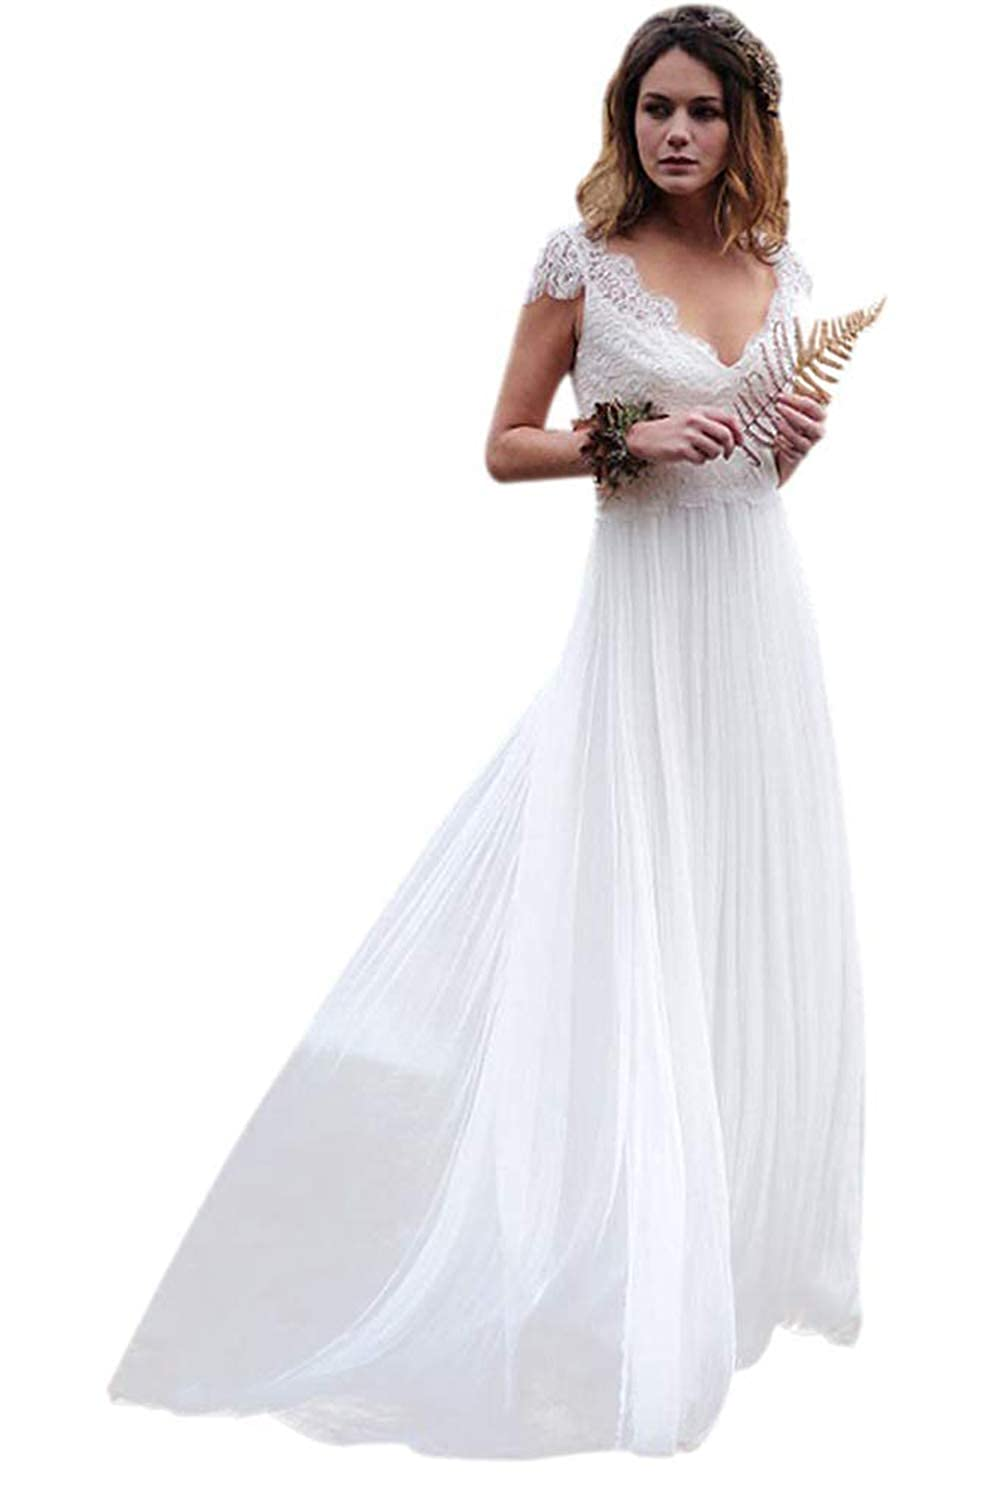 9a245afebbc Ellenhouse Women s V-Neck Boho Wedding Dresses Bohemian Lace Bridal Gowns  at Amazon Women s Clothing store